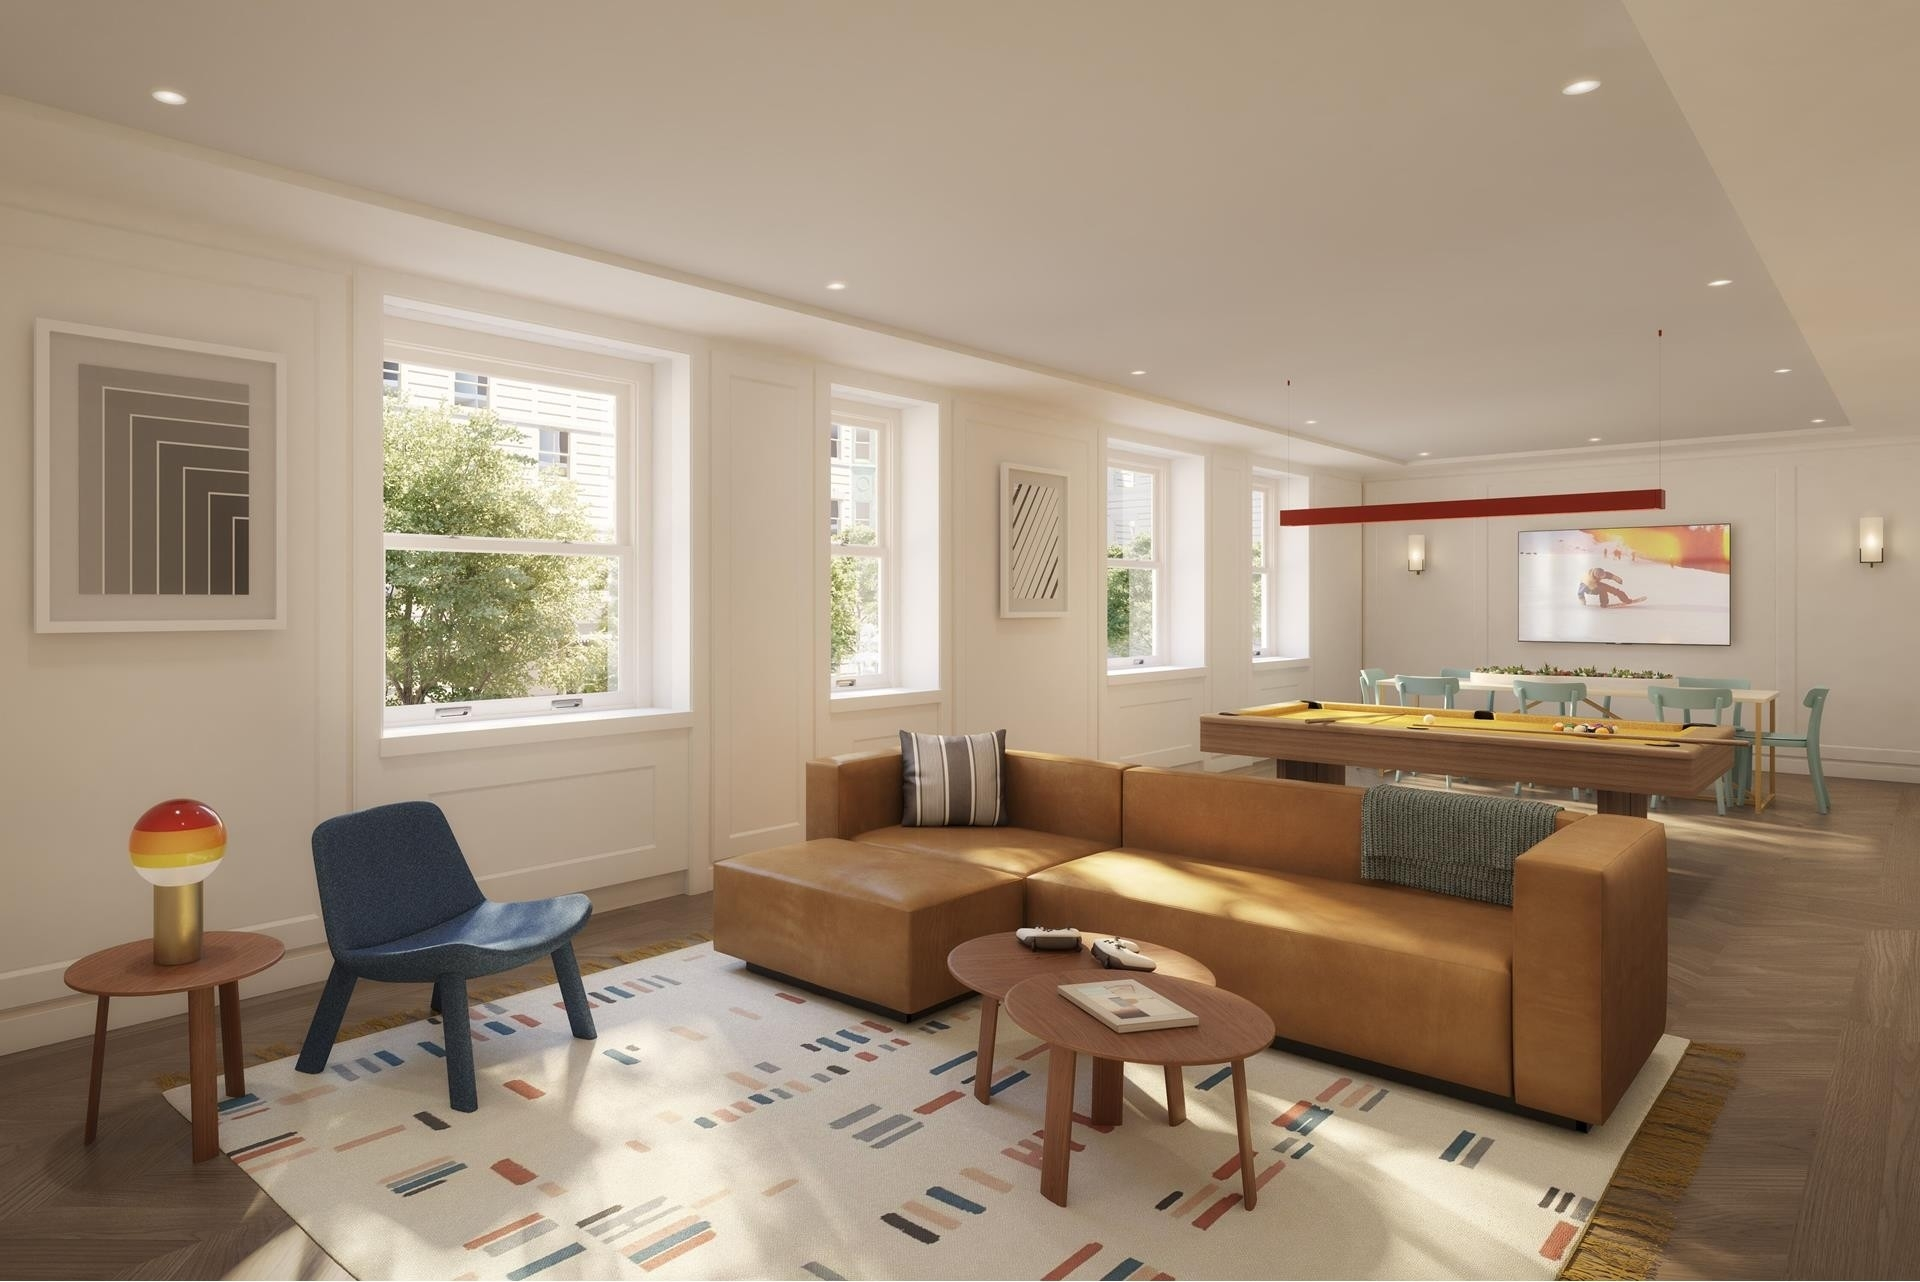 21. Condominiums for Sale at The Belnord, 225 W 86TH ST , 1103 Upper West Side, New York, NY 10024